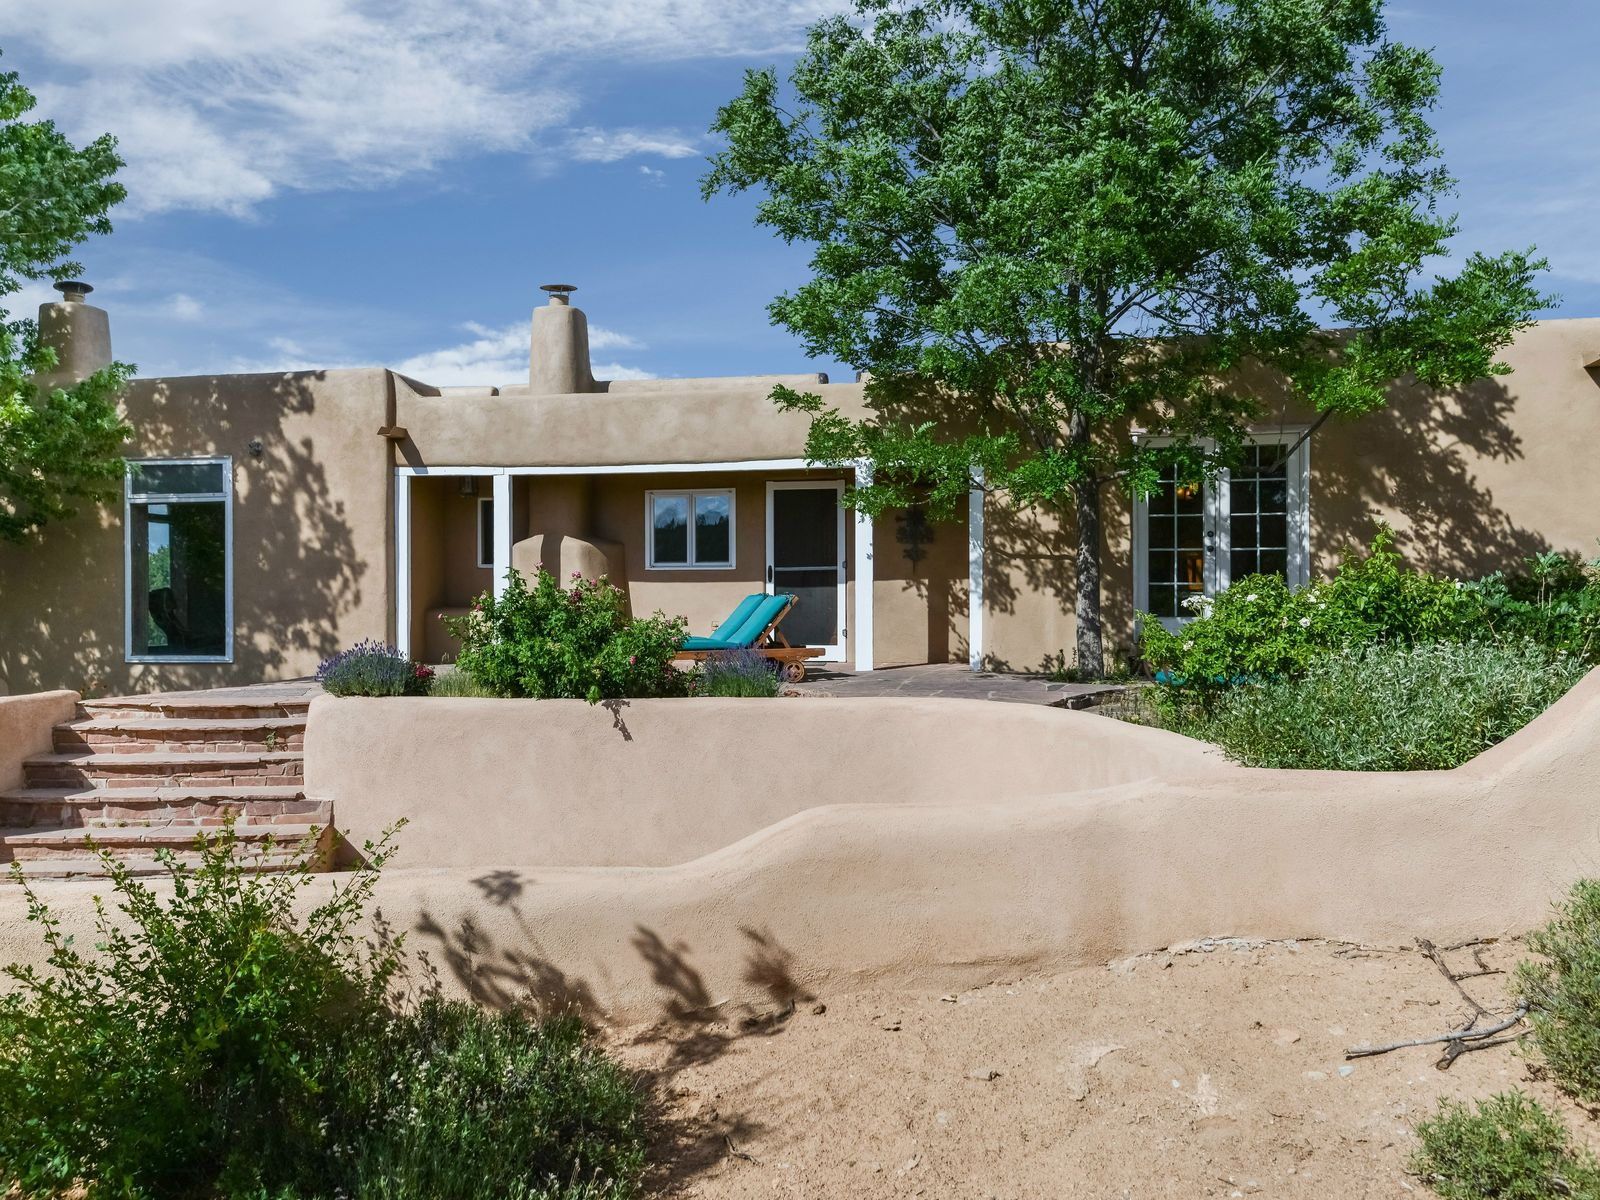 86 B Paseo Encantado NE, Santa Fe NM Single Family Home - Santa Fe Real Estate